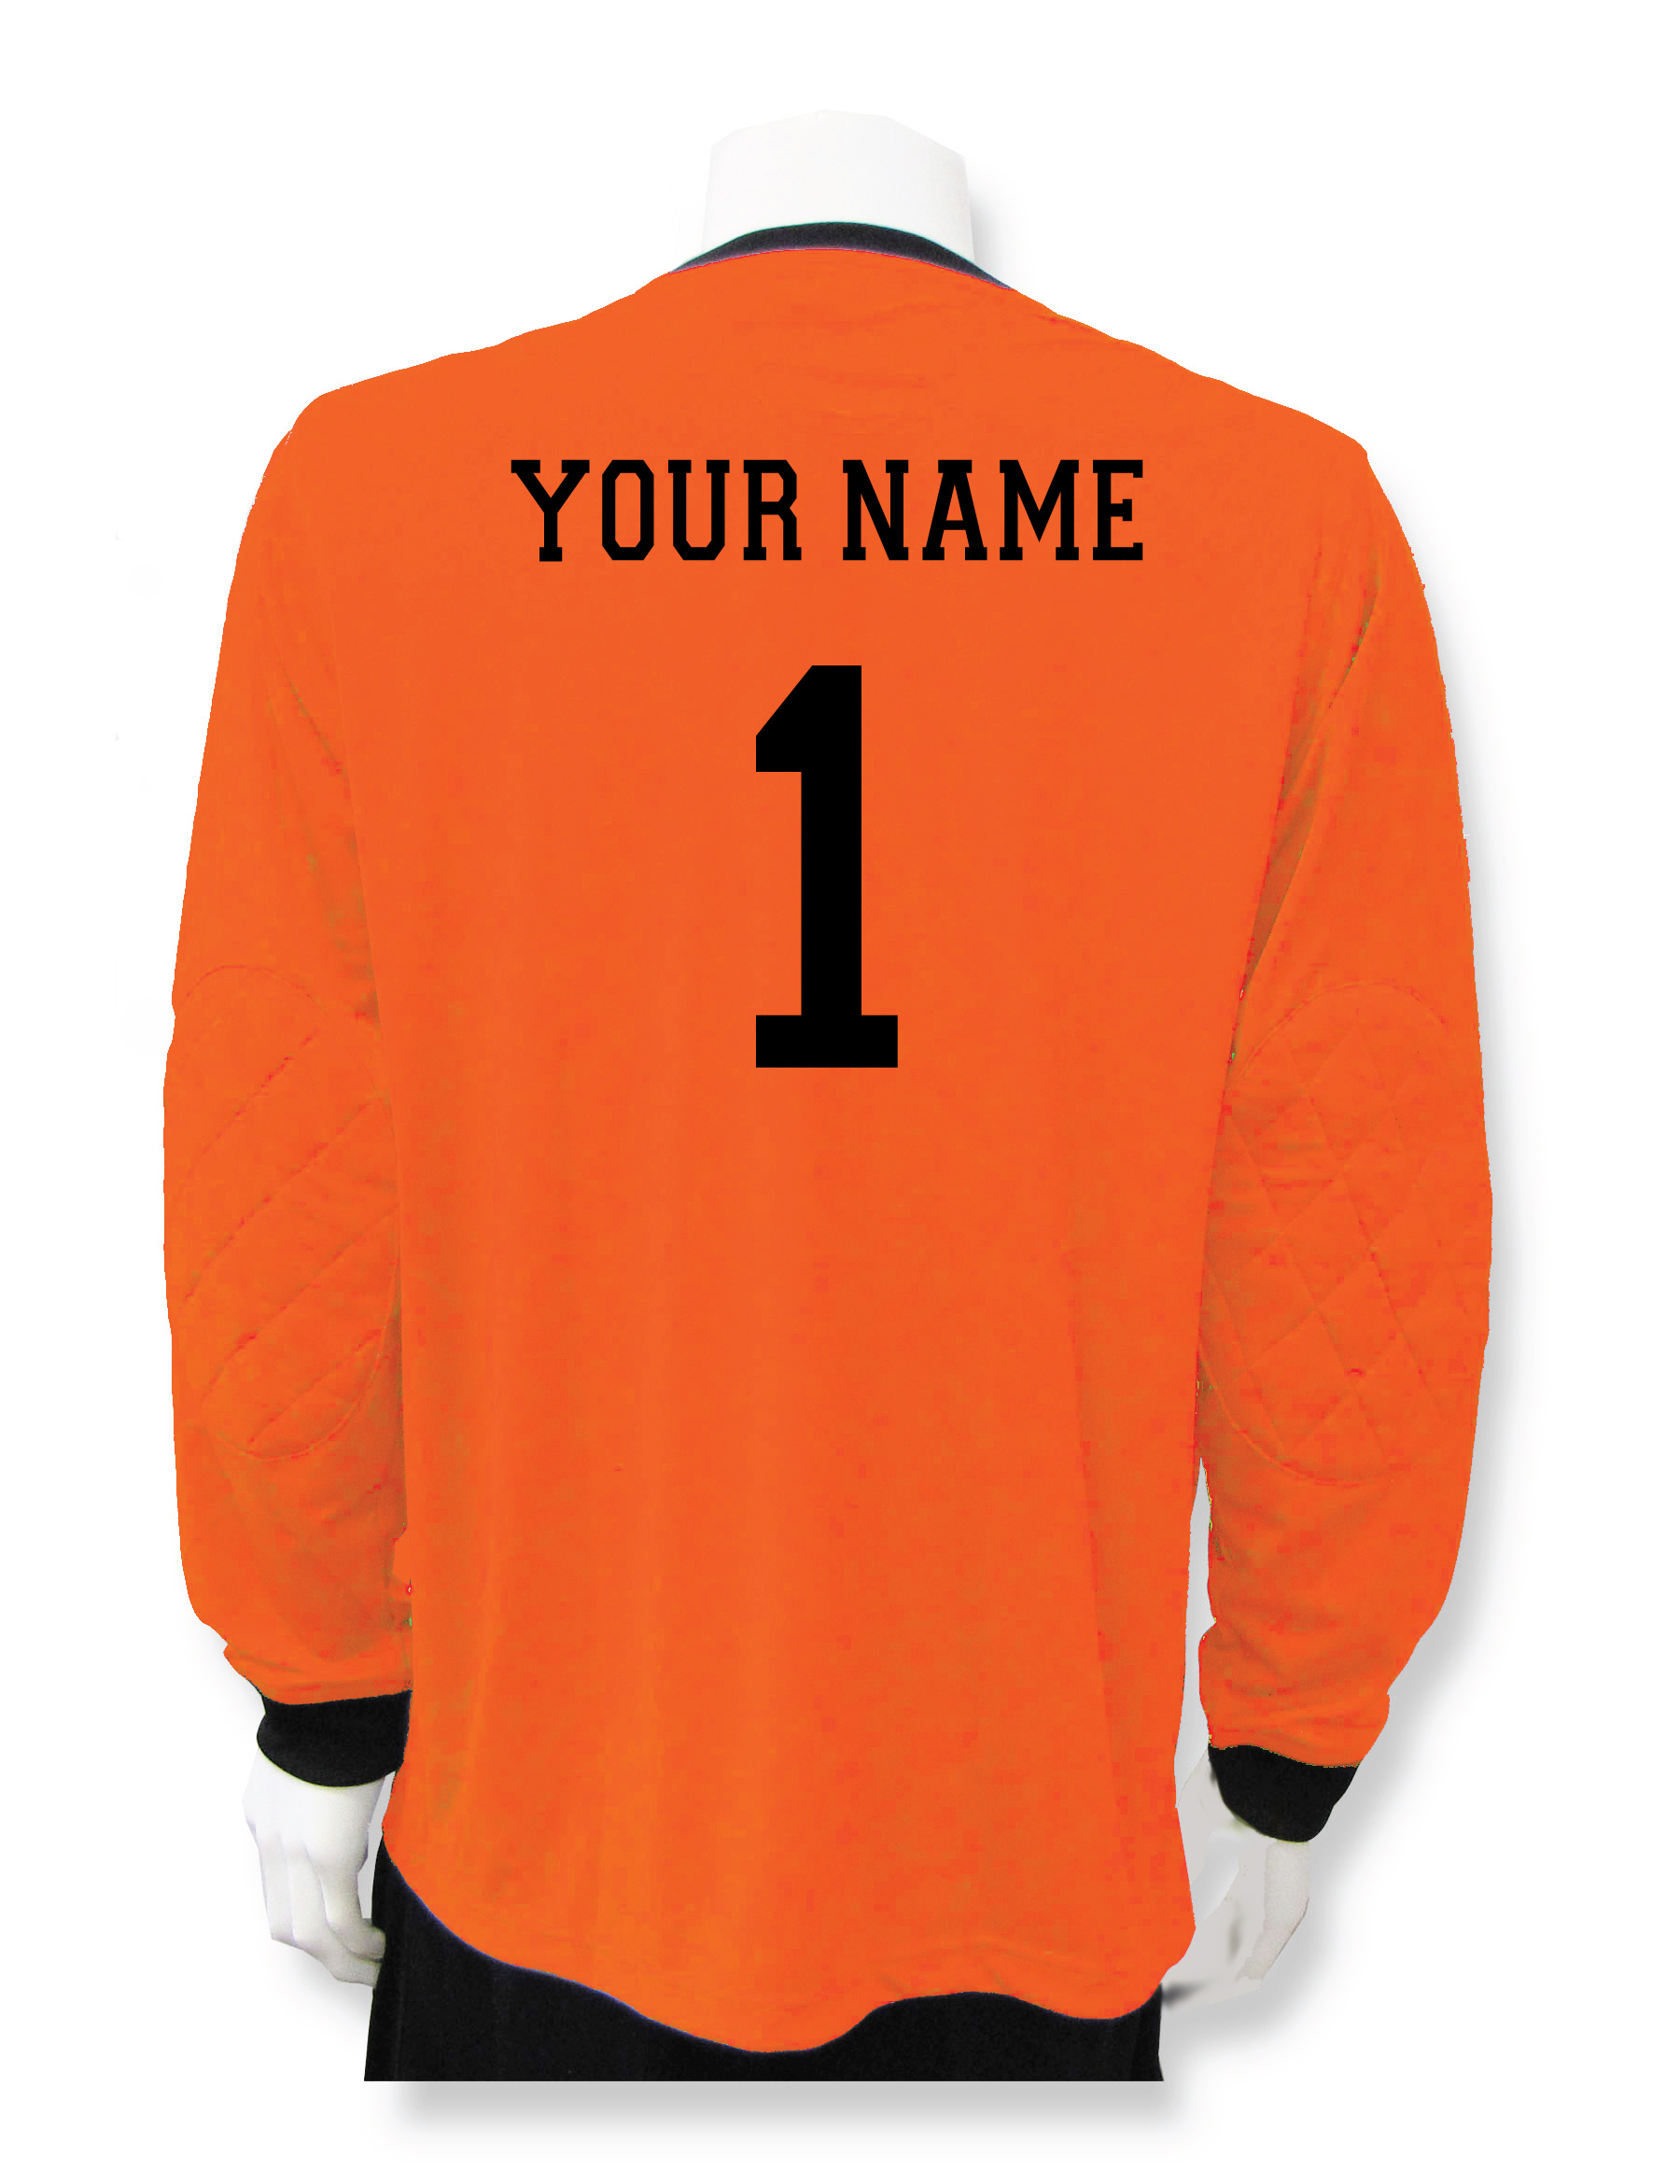 Long sleeve soccer keeper jersey in orange with name and number on back by Code Four Athletics